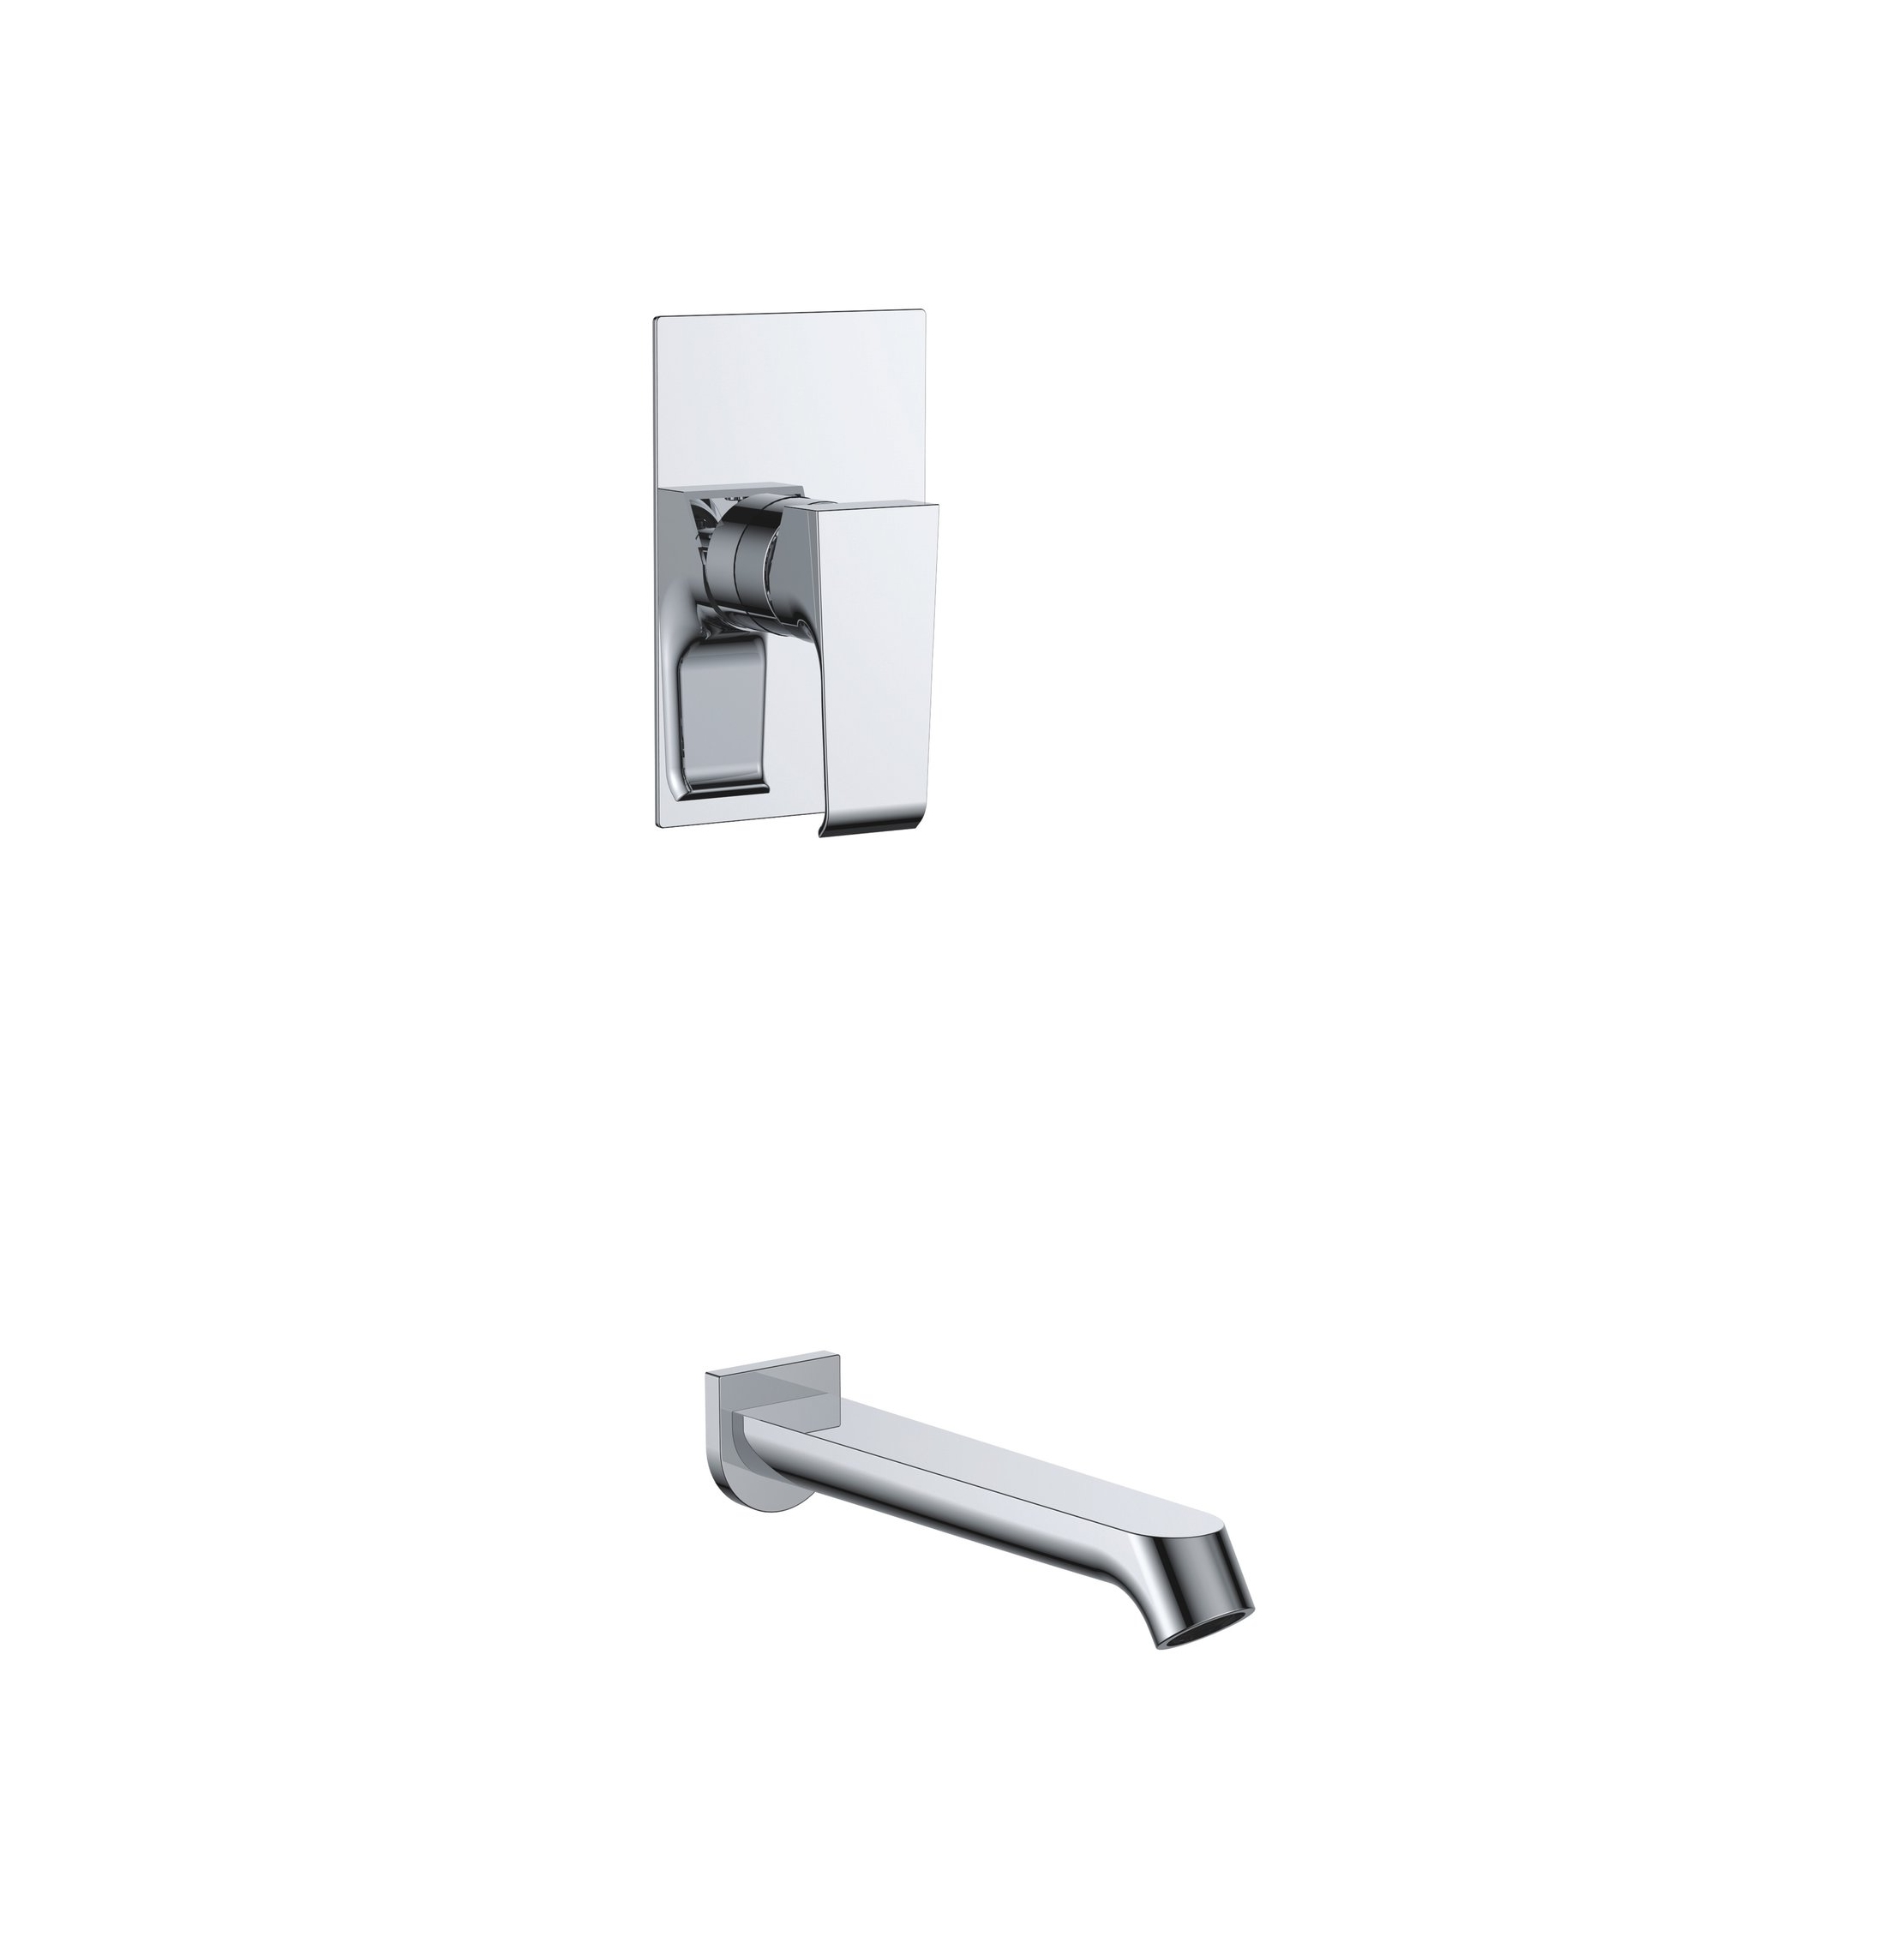 7167-102:Concealed shower valve with spout